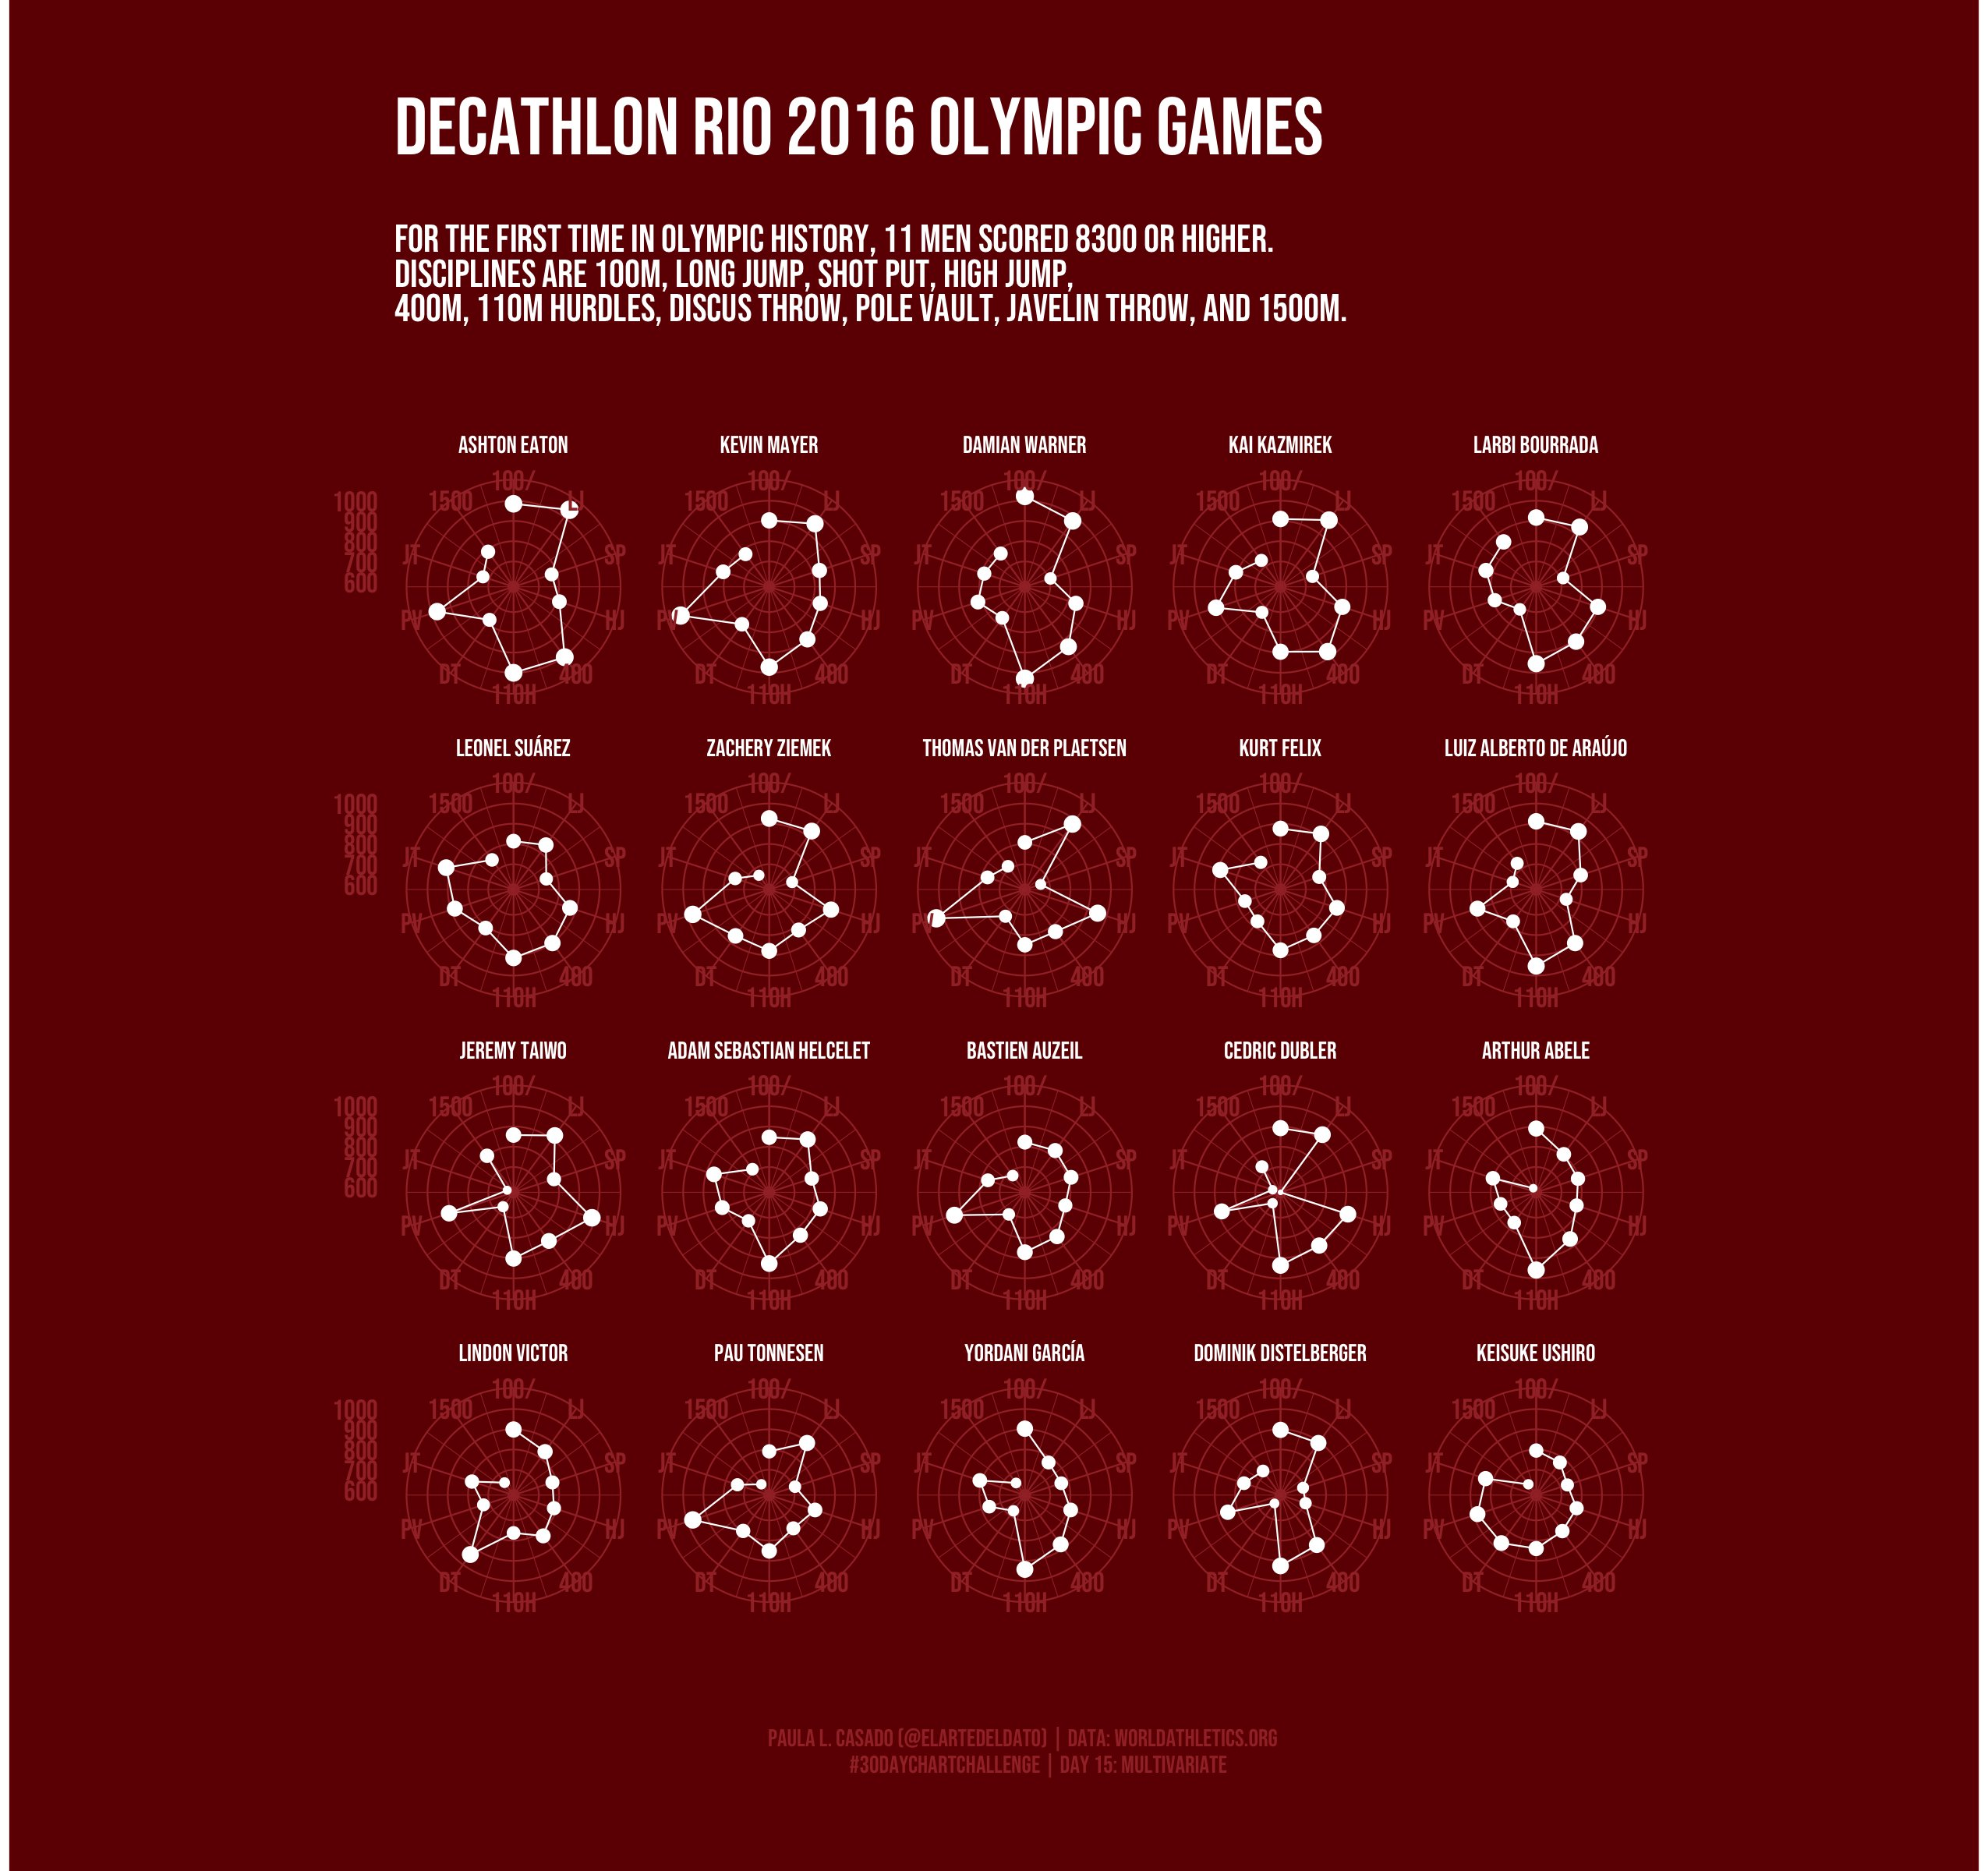 Results of Decathlon Rio 2016 Olympic Games